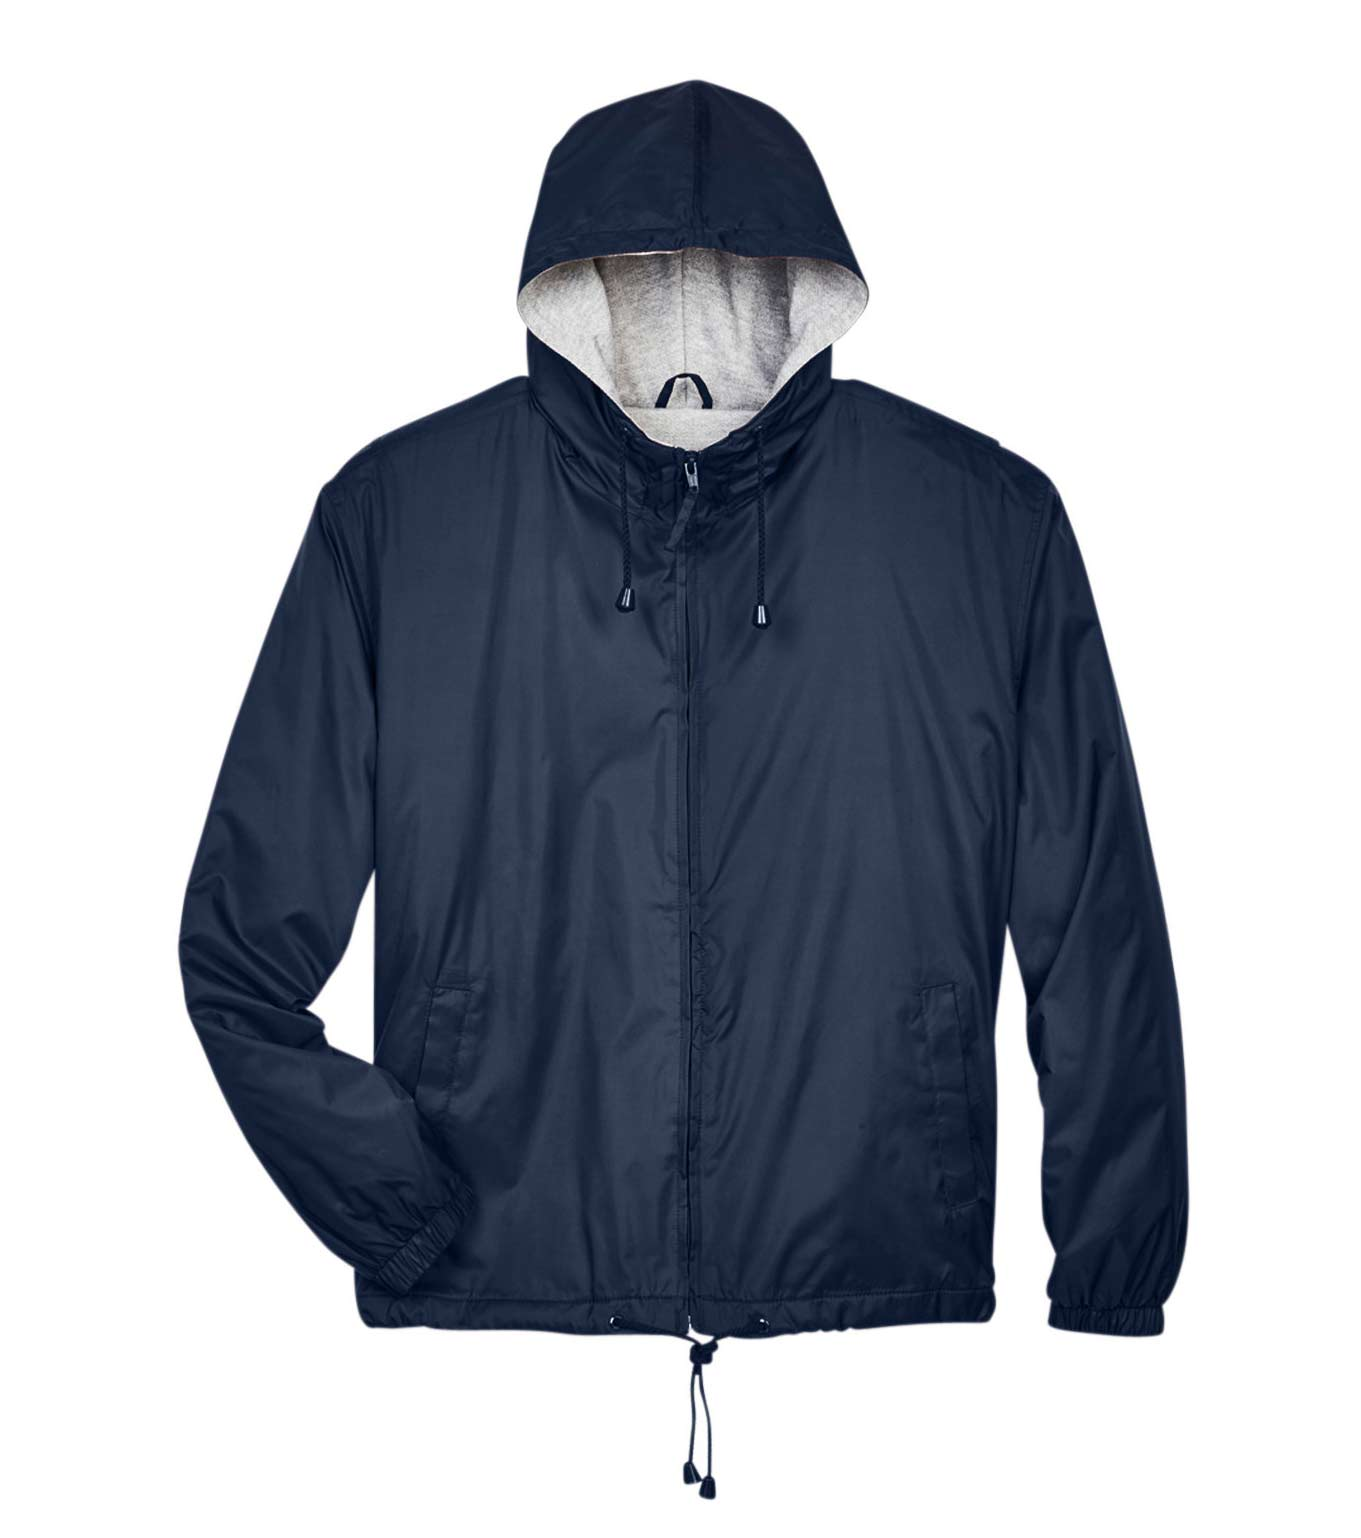 Mens Hooded Jacket with Ash Fleece Lining